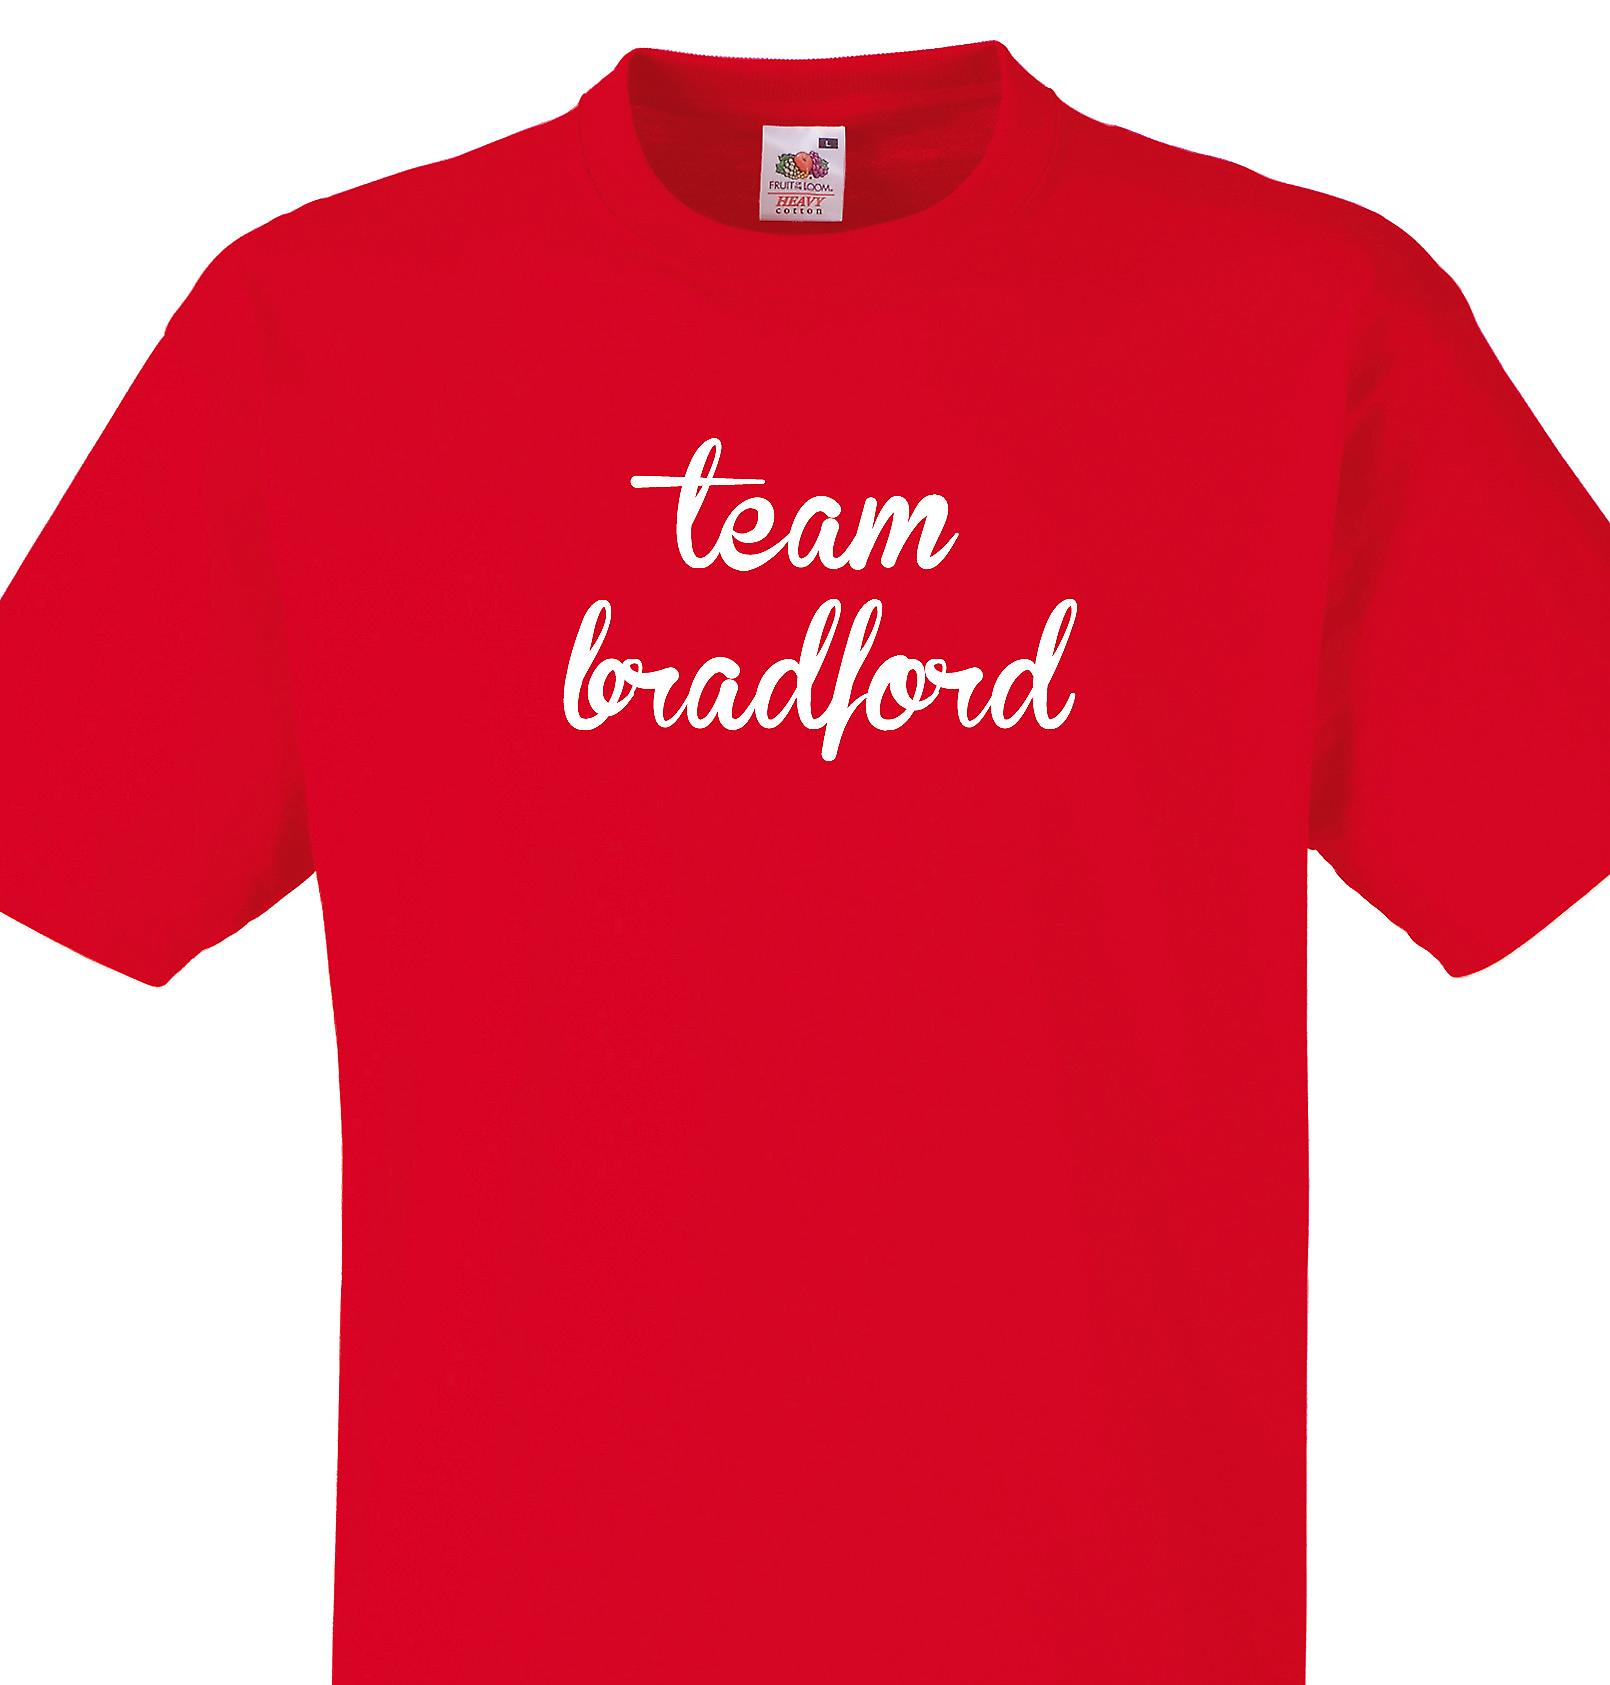 Team-Bradford-Rot-T-shirt